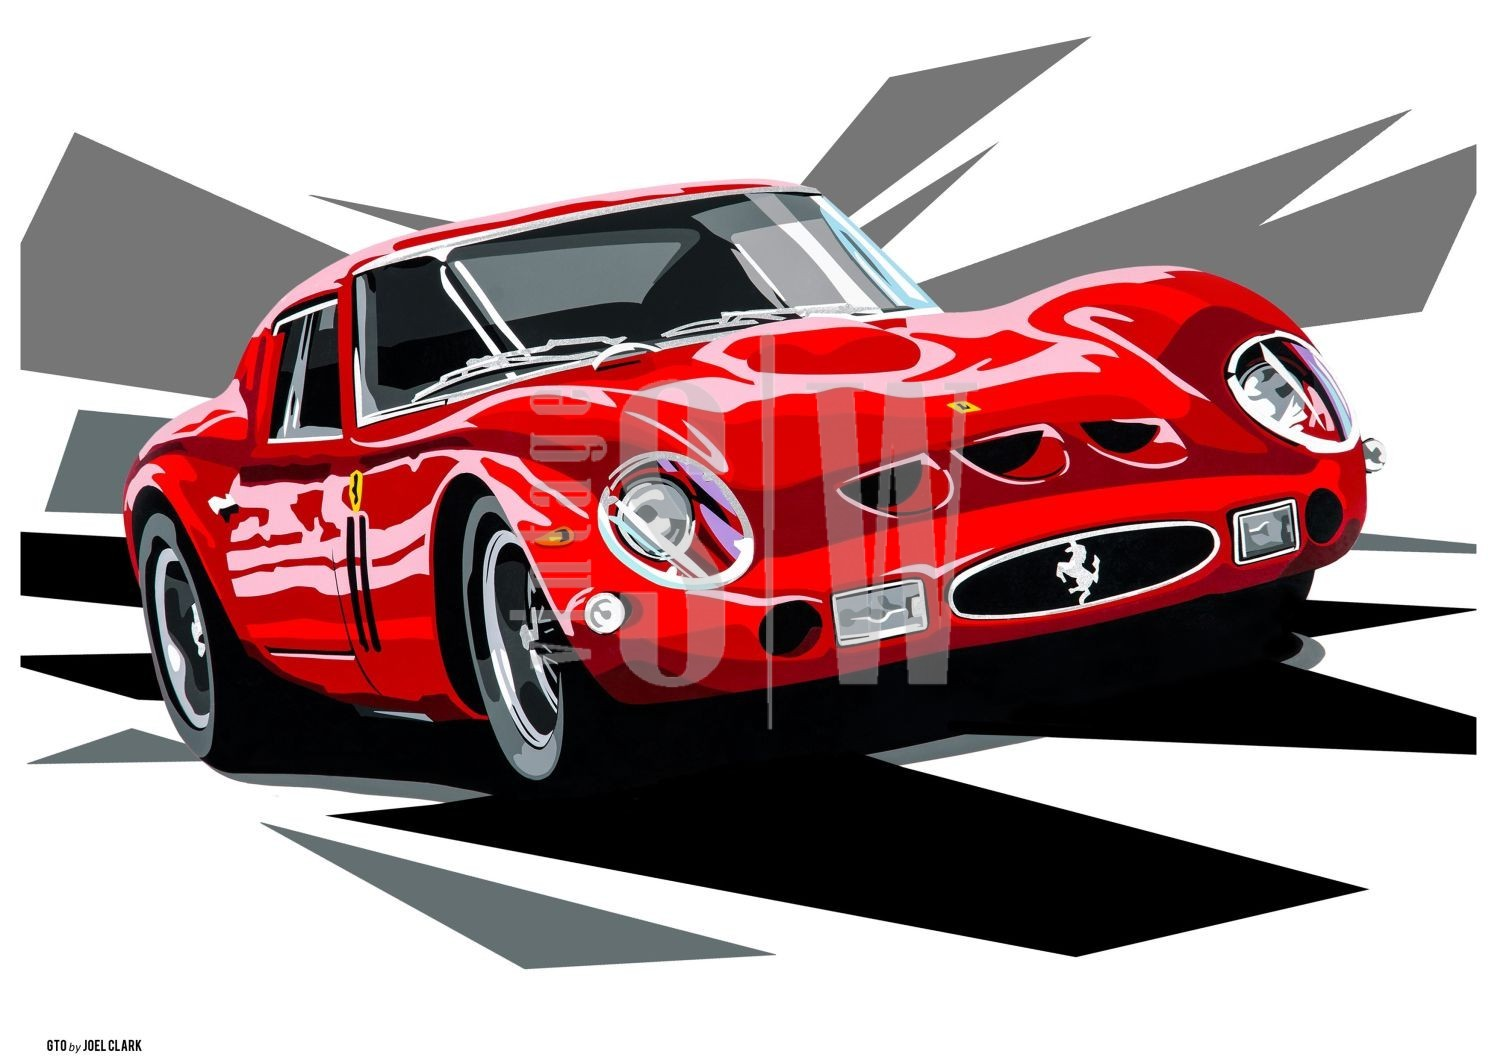 ferrari by digital art shevchuk automotive raikkonen racing kimi featured yuriy car